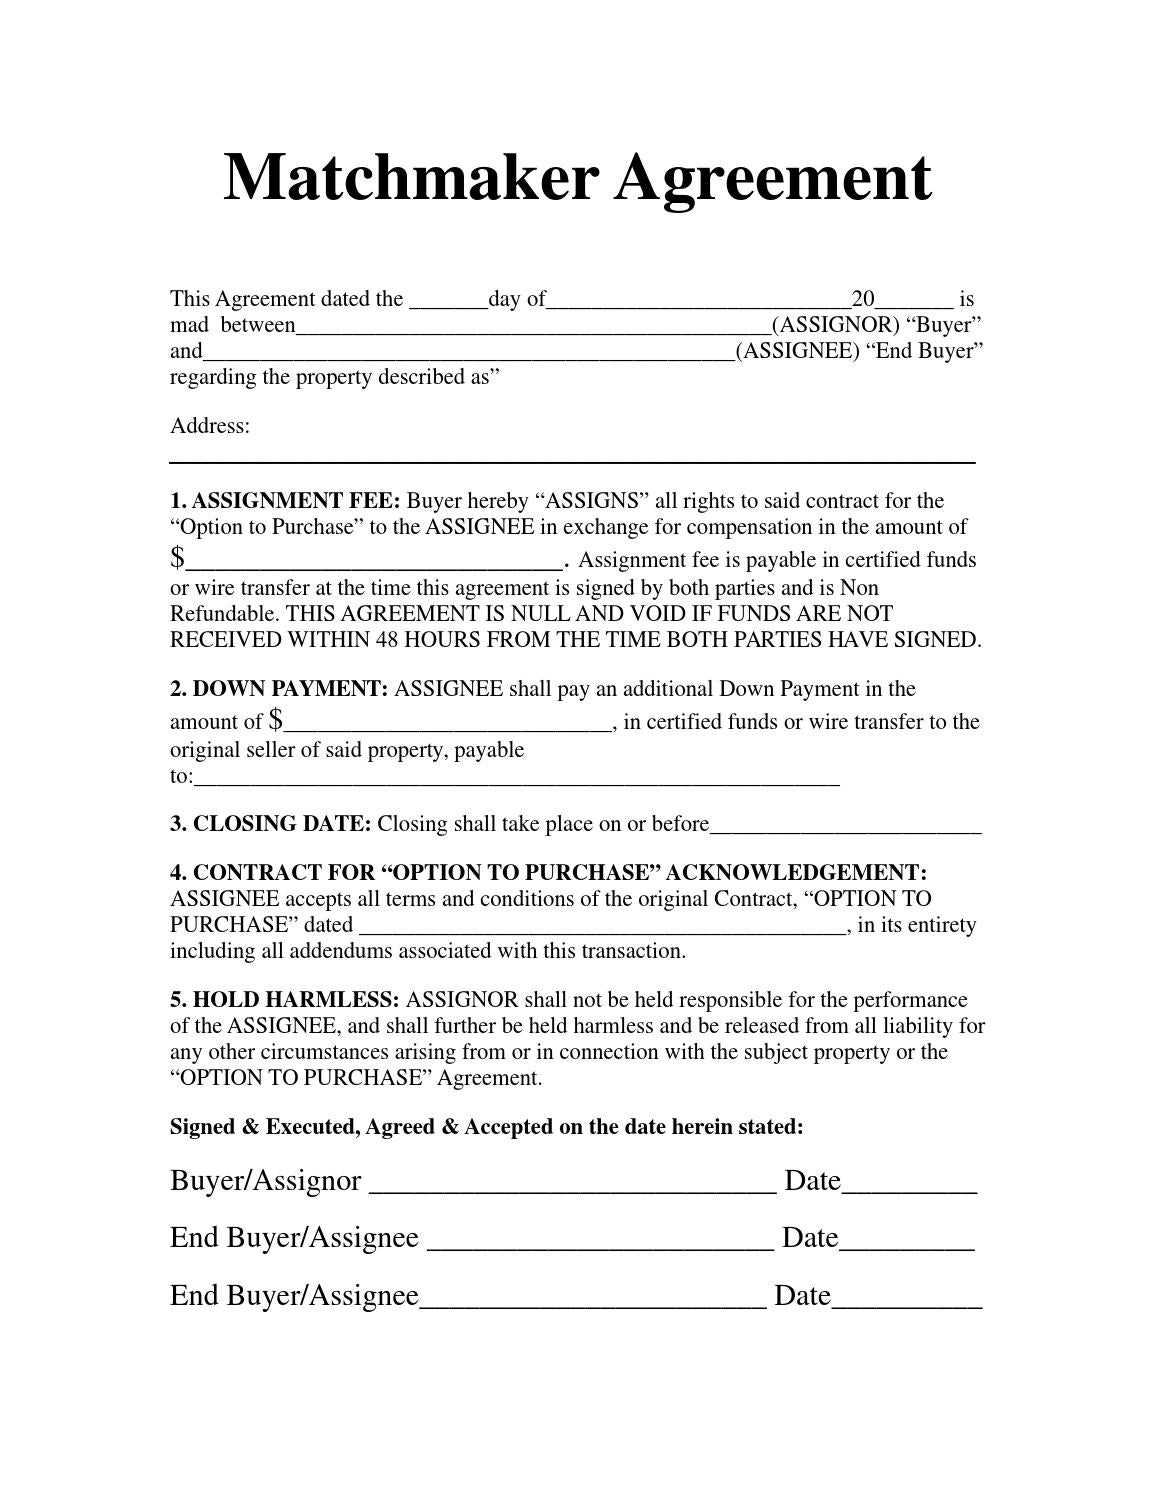 Matchmaker Agreement By Massive Ventures Llc Issuu